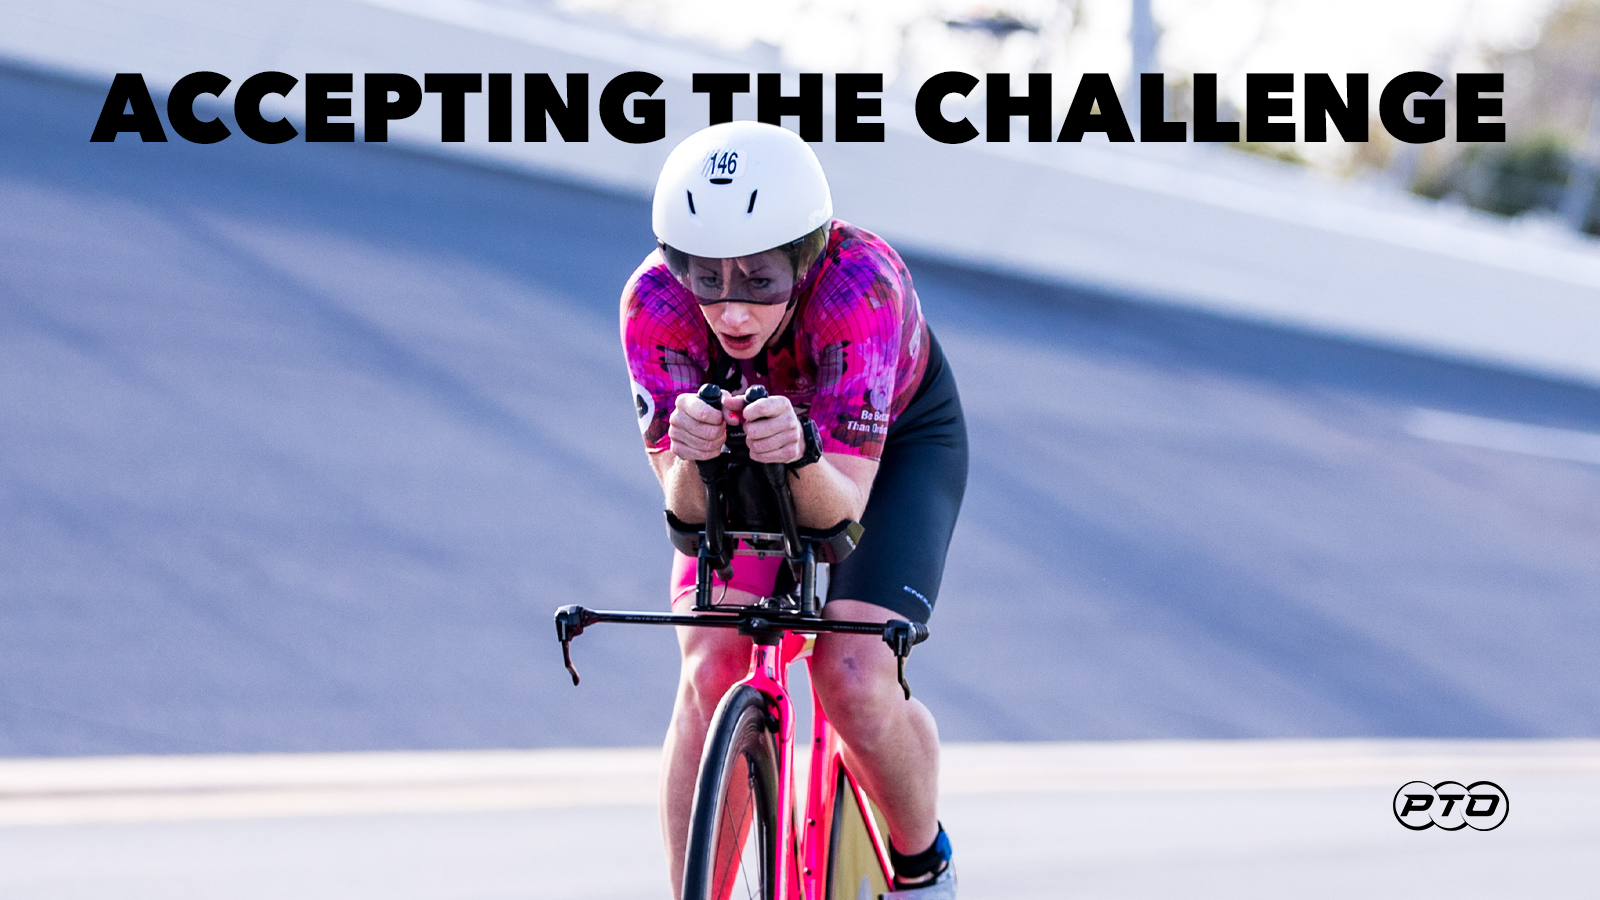 Accepting the challenge: Renee Kiley's epic journey